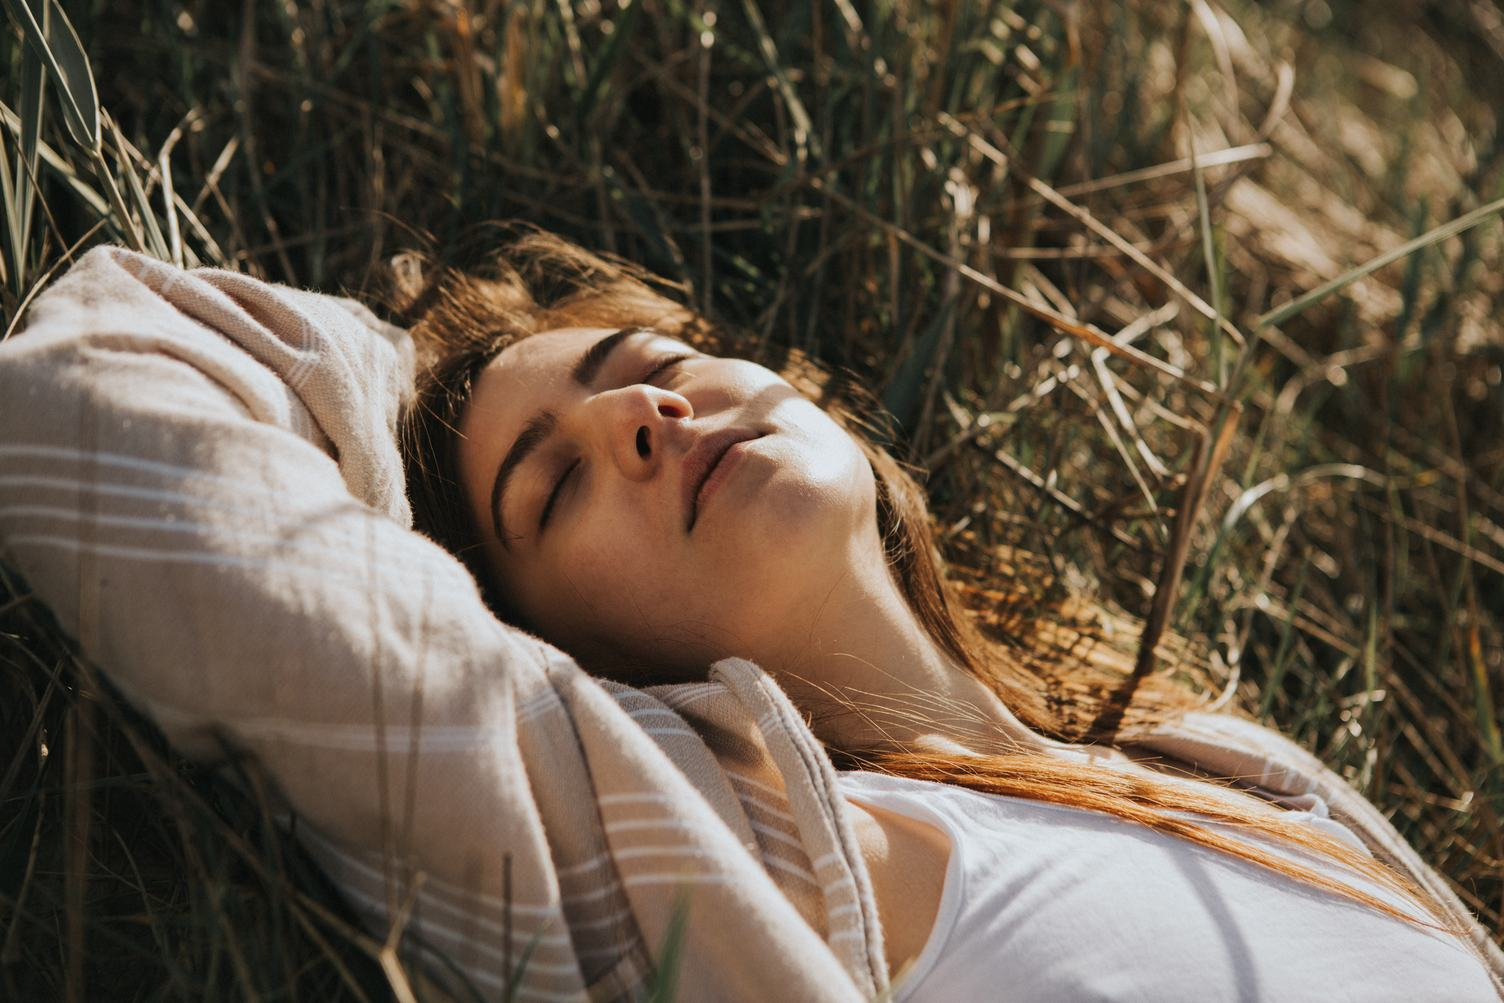 Young Woman Relaxing Lying on the Grass with Closed Eyes Enjoying Sunlight